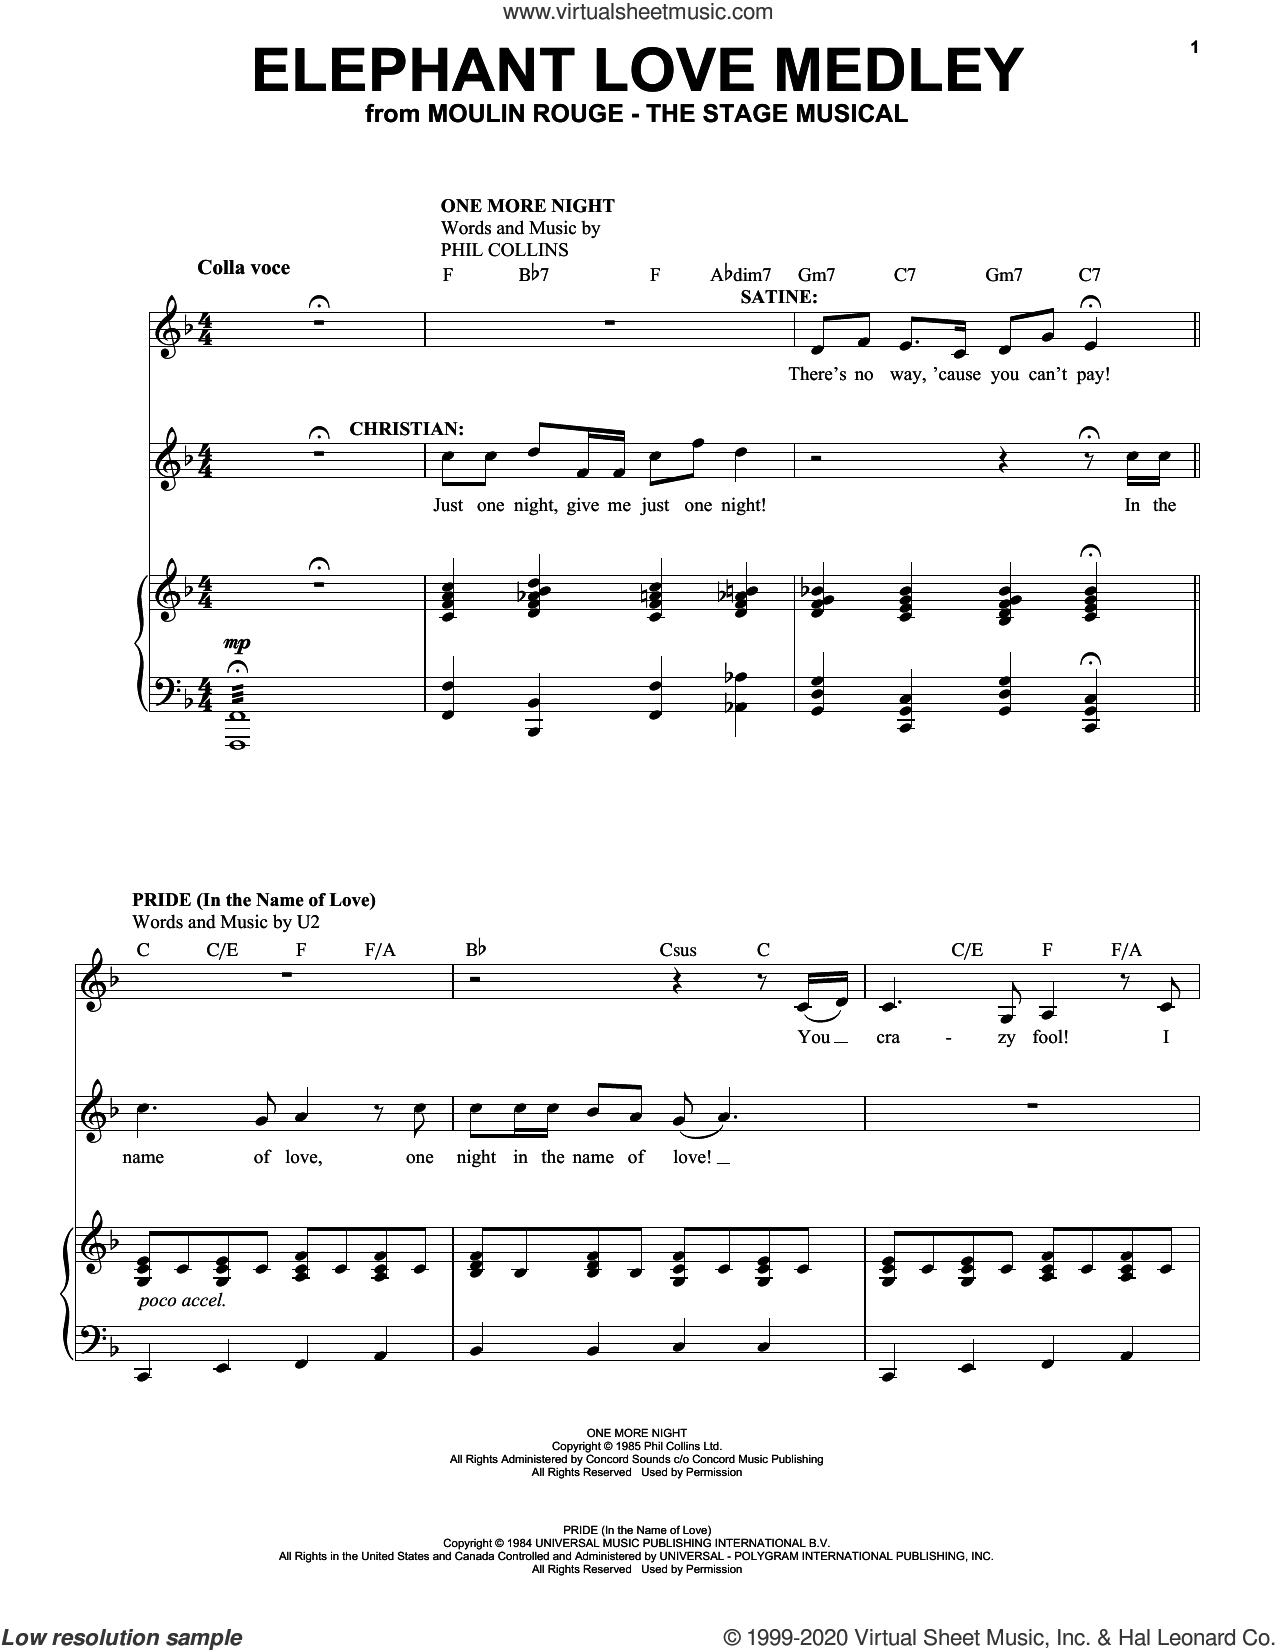 Elephant Love Medley (from Moulin Rouge! The Musical) sheet music for voice and piano by Moulin Rouge! The Musical Cast, intermediate skill level